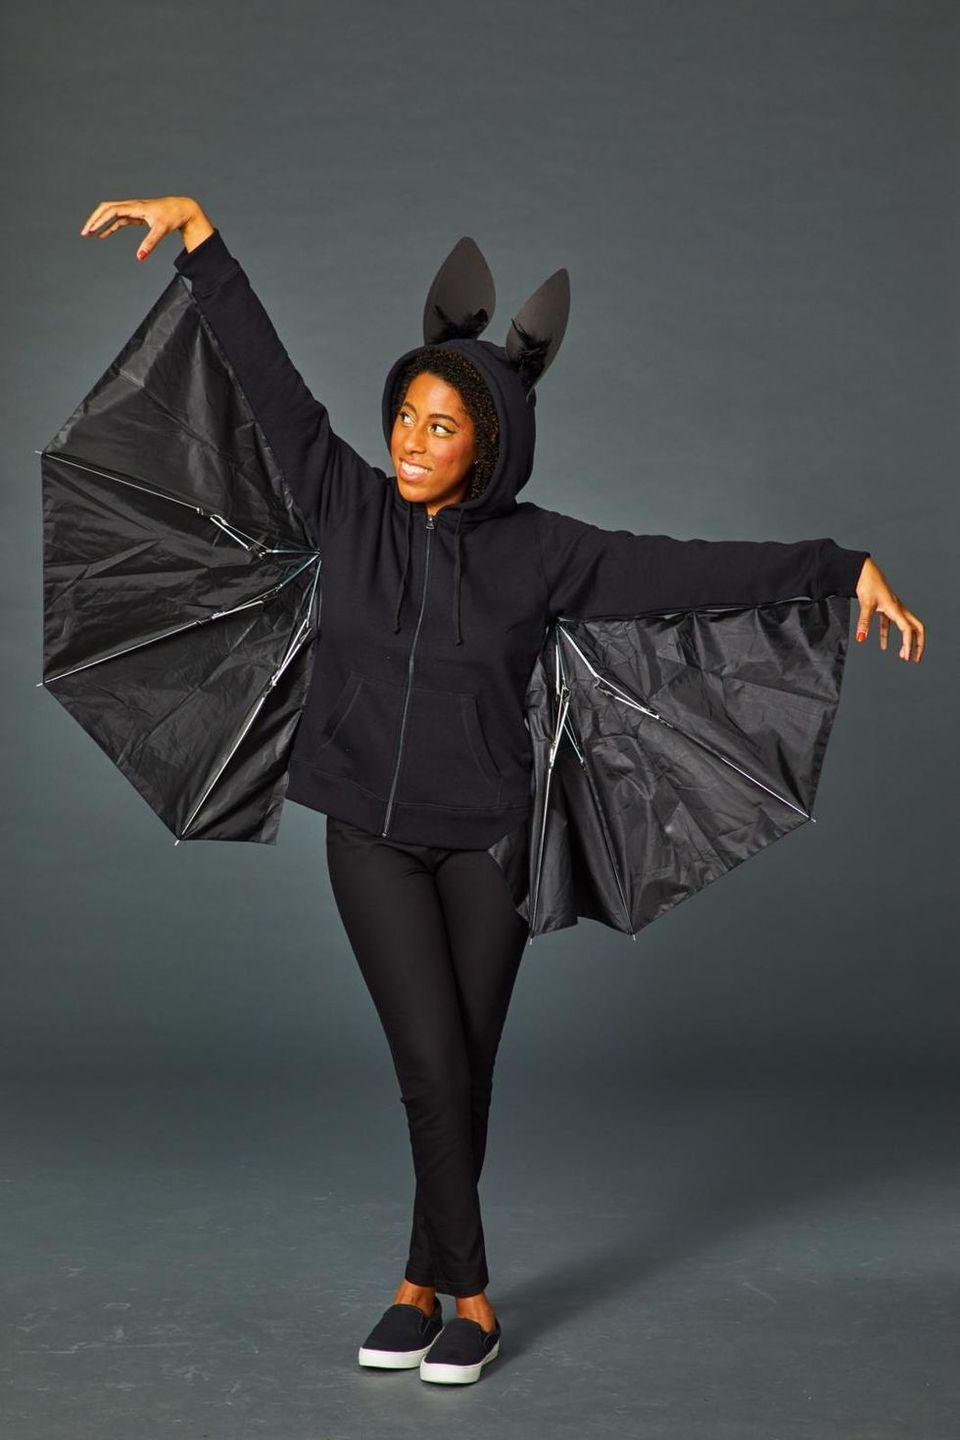 <p>This costume is so easy to pull off. All you need is a black hoodie and a broken umbrella.</p><p><strong>Make the costume:</strong> Cut your umbrella in half and use black safety pins or hot glue to attach it to the arms of a black hoodie. Fasten the hinges of the metal umbrella pieces with black electrical tape, so they can properly fold. Create ears with foam core and feathers for added texture. </p>